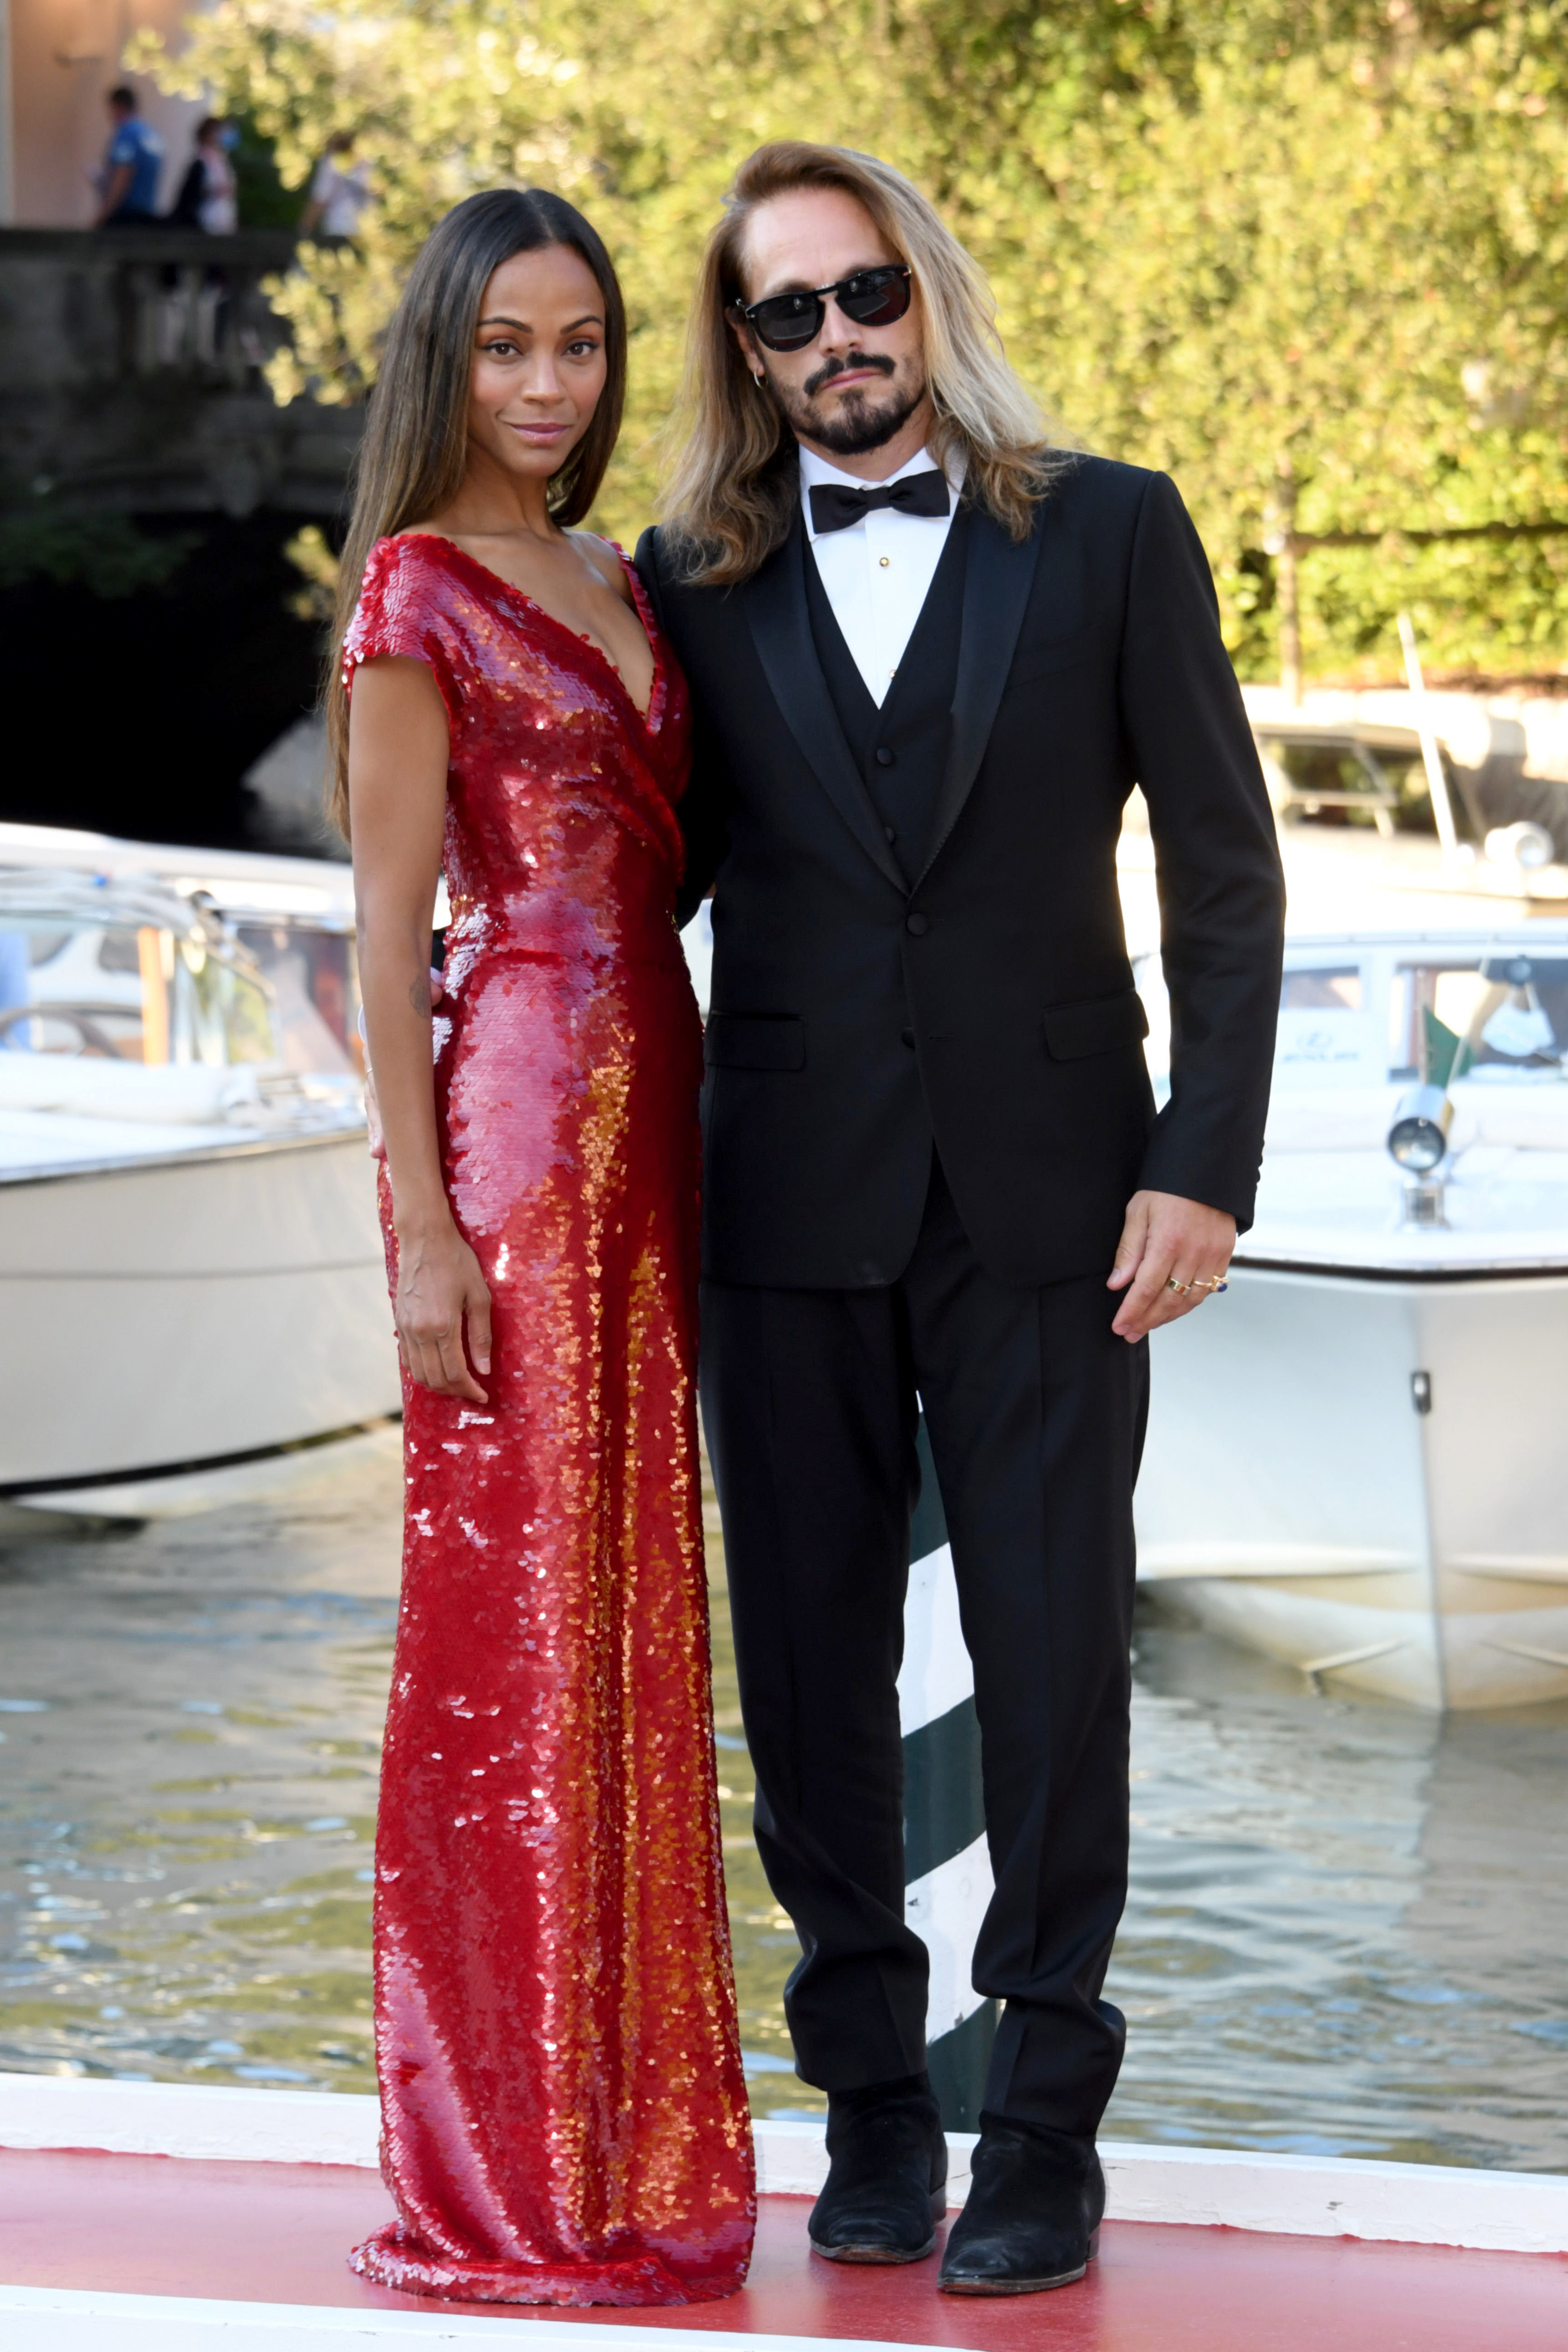 78th Venice Film Festival 2021: Arrivals At The DarsenaPictured: Zoe Saldana,Marco Perego Ref: SPL5251021 020921 NON-EXCLUSIVE Picture by: IPA / SplashNews.com Splash News and Pictures USA: +1 310-525-5808 London: +44 (0)20 8126 1009 Berlin: +49 175 3764 166 photodesk@splashnews.com World Rights, No France Rights, No Italy Rights, No Spain Rights